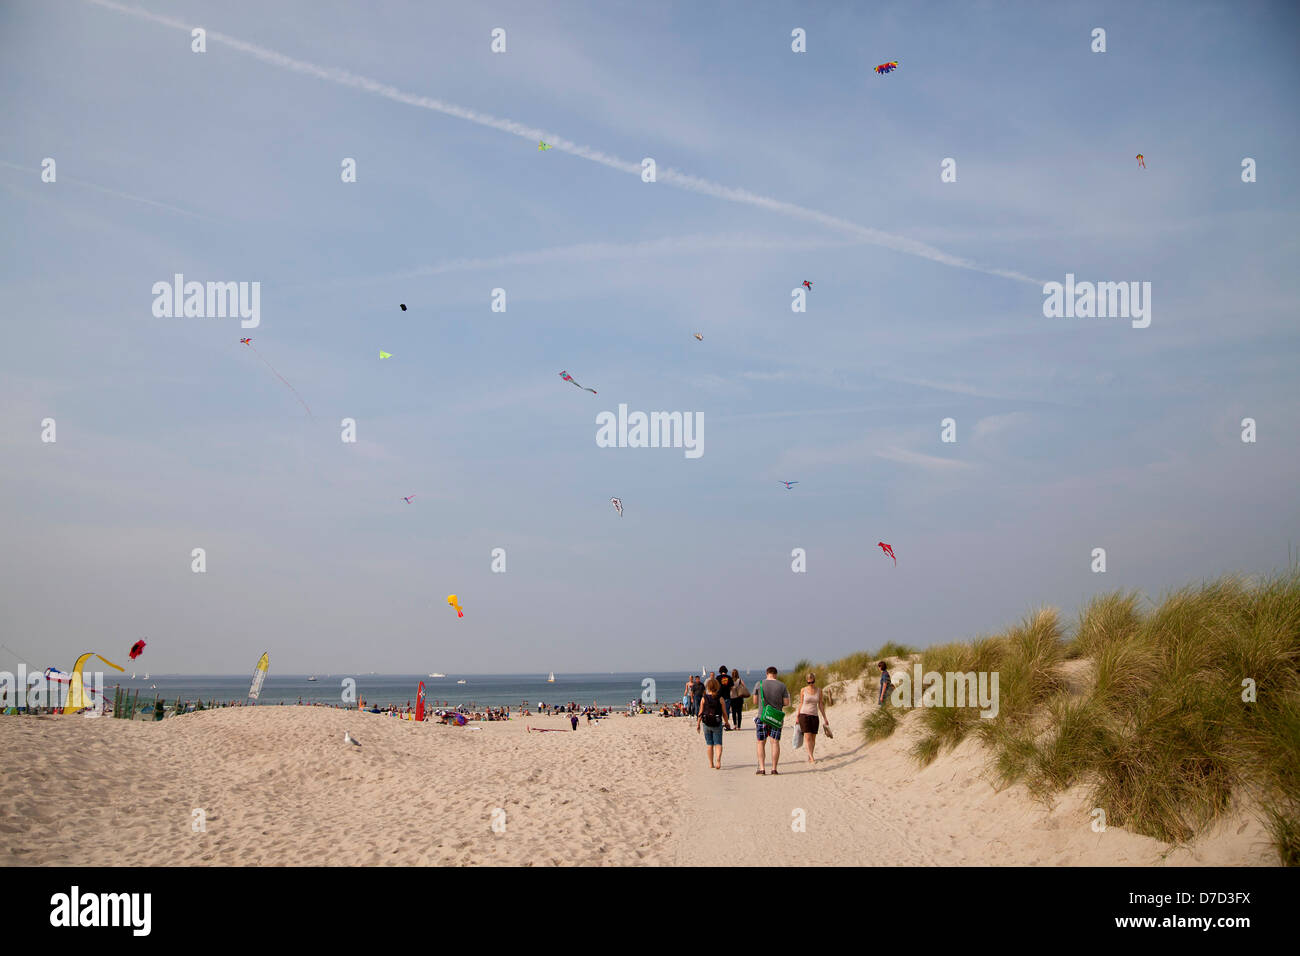 Kites on the busy beach of Warnemuende on the Baltic Sea, Rostock, Mecklenburg-Western Pomerania, Germany, Europe - Stock Image